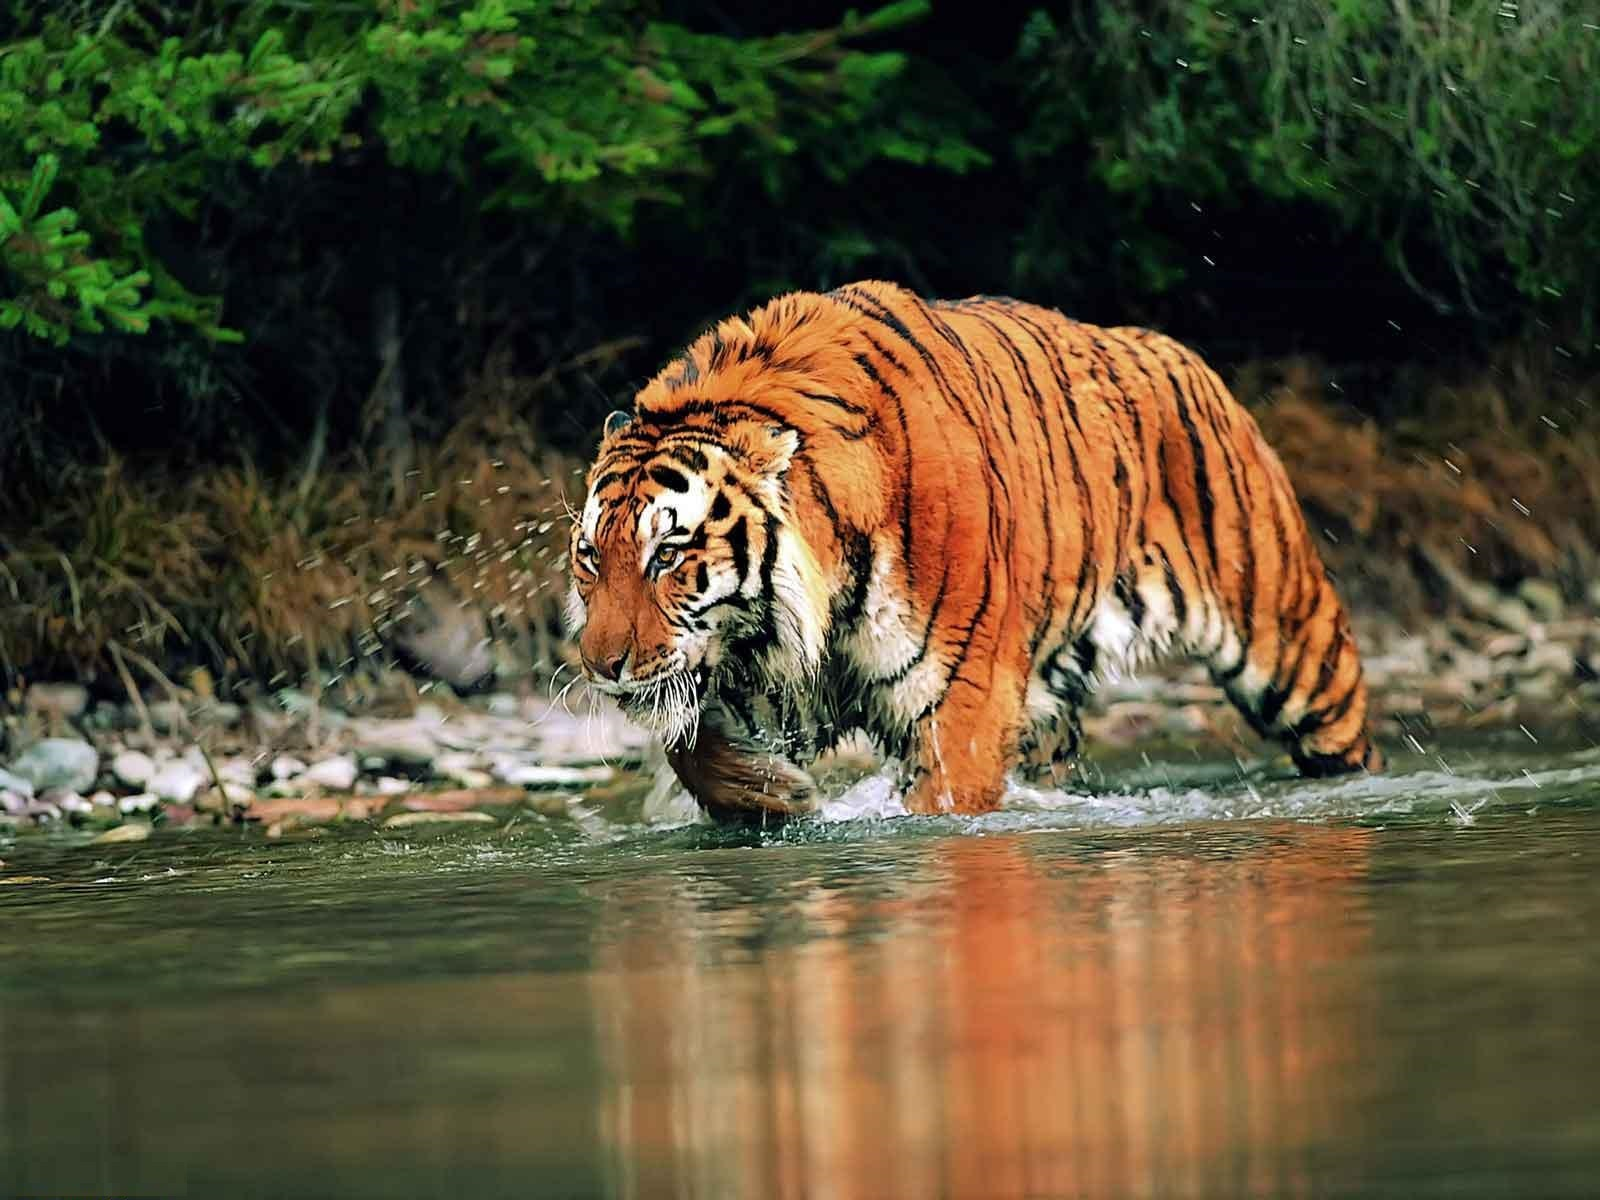 bengal tiger - facts, pictures, habitat, information, diet